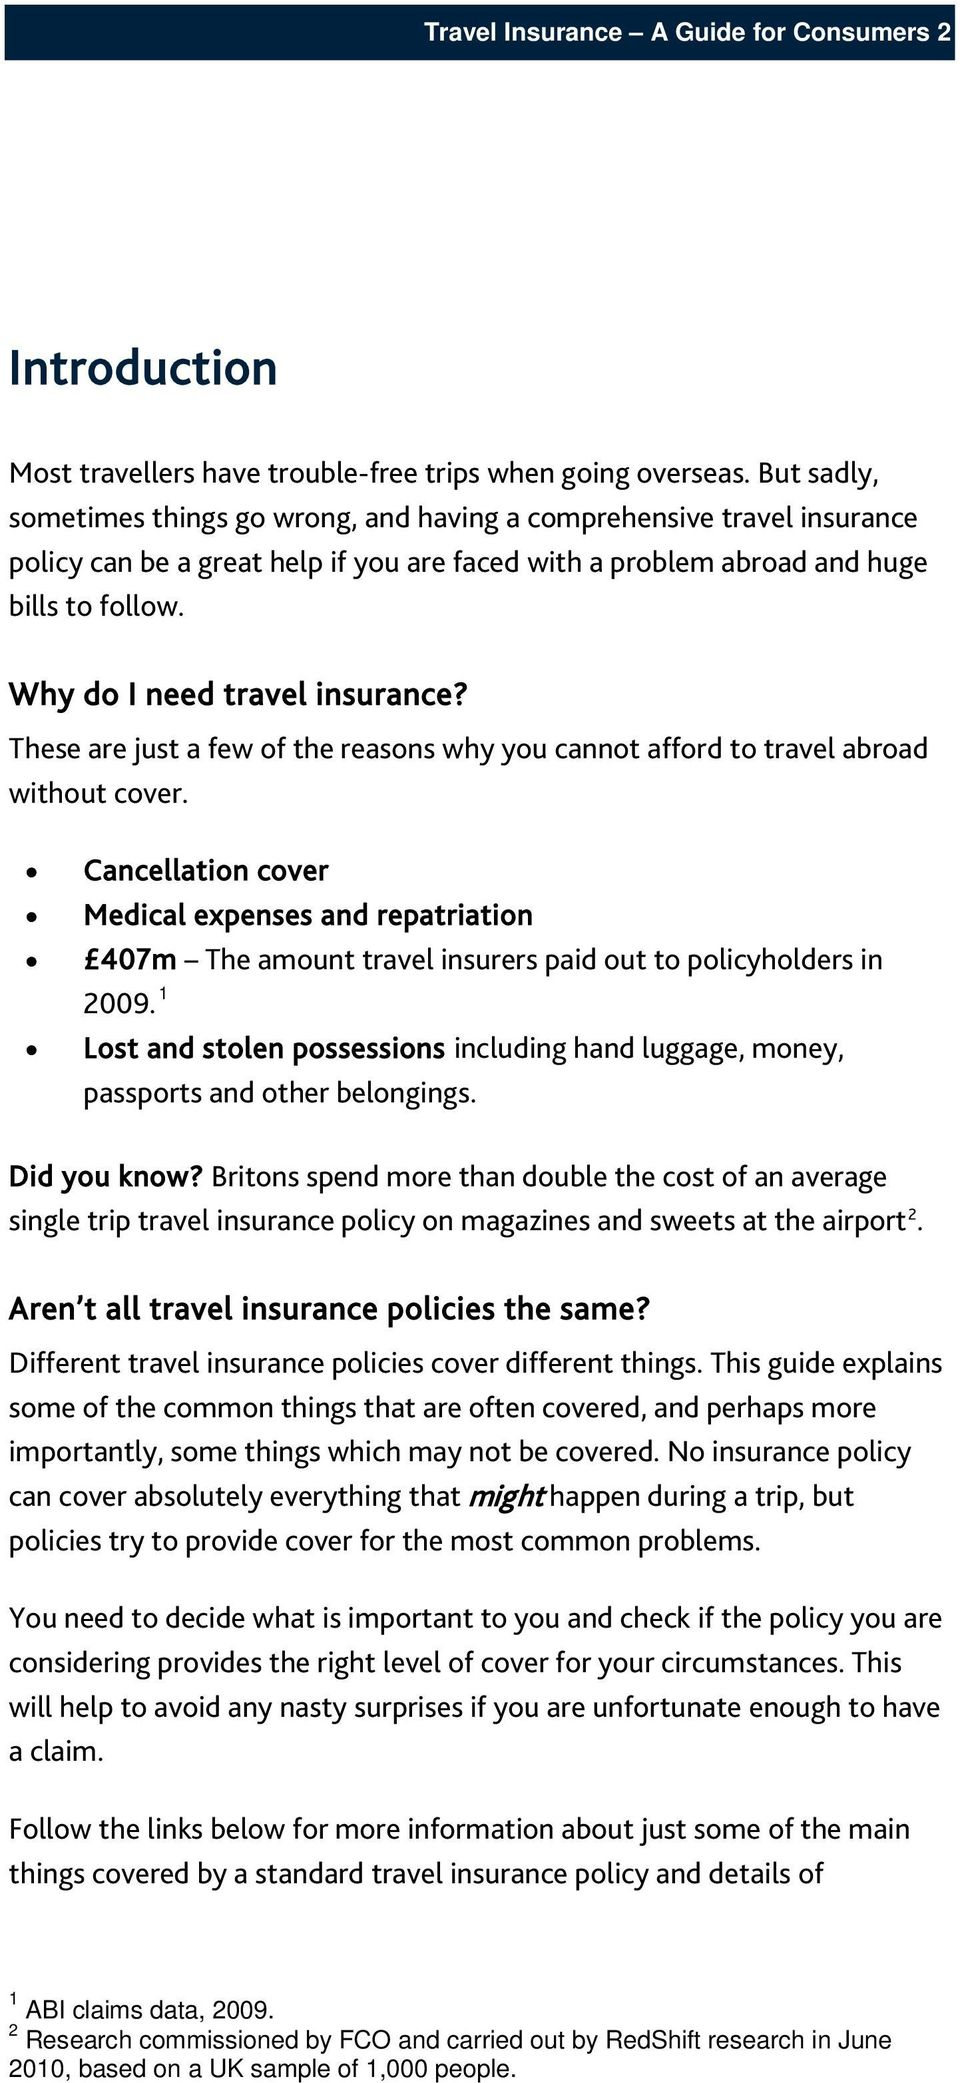 Why do I need travel insurance? These are just a few of the reasons why you cannot afford to travel abroad without cover.